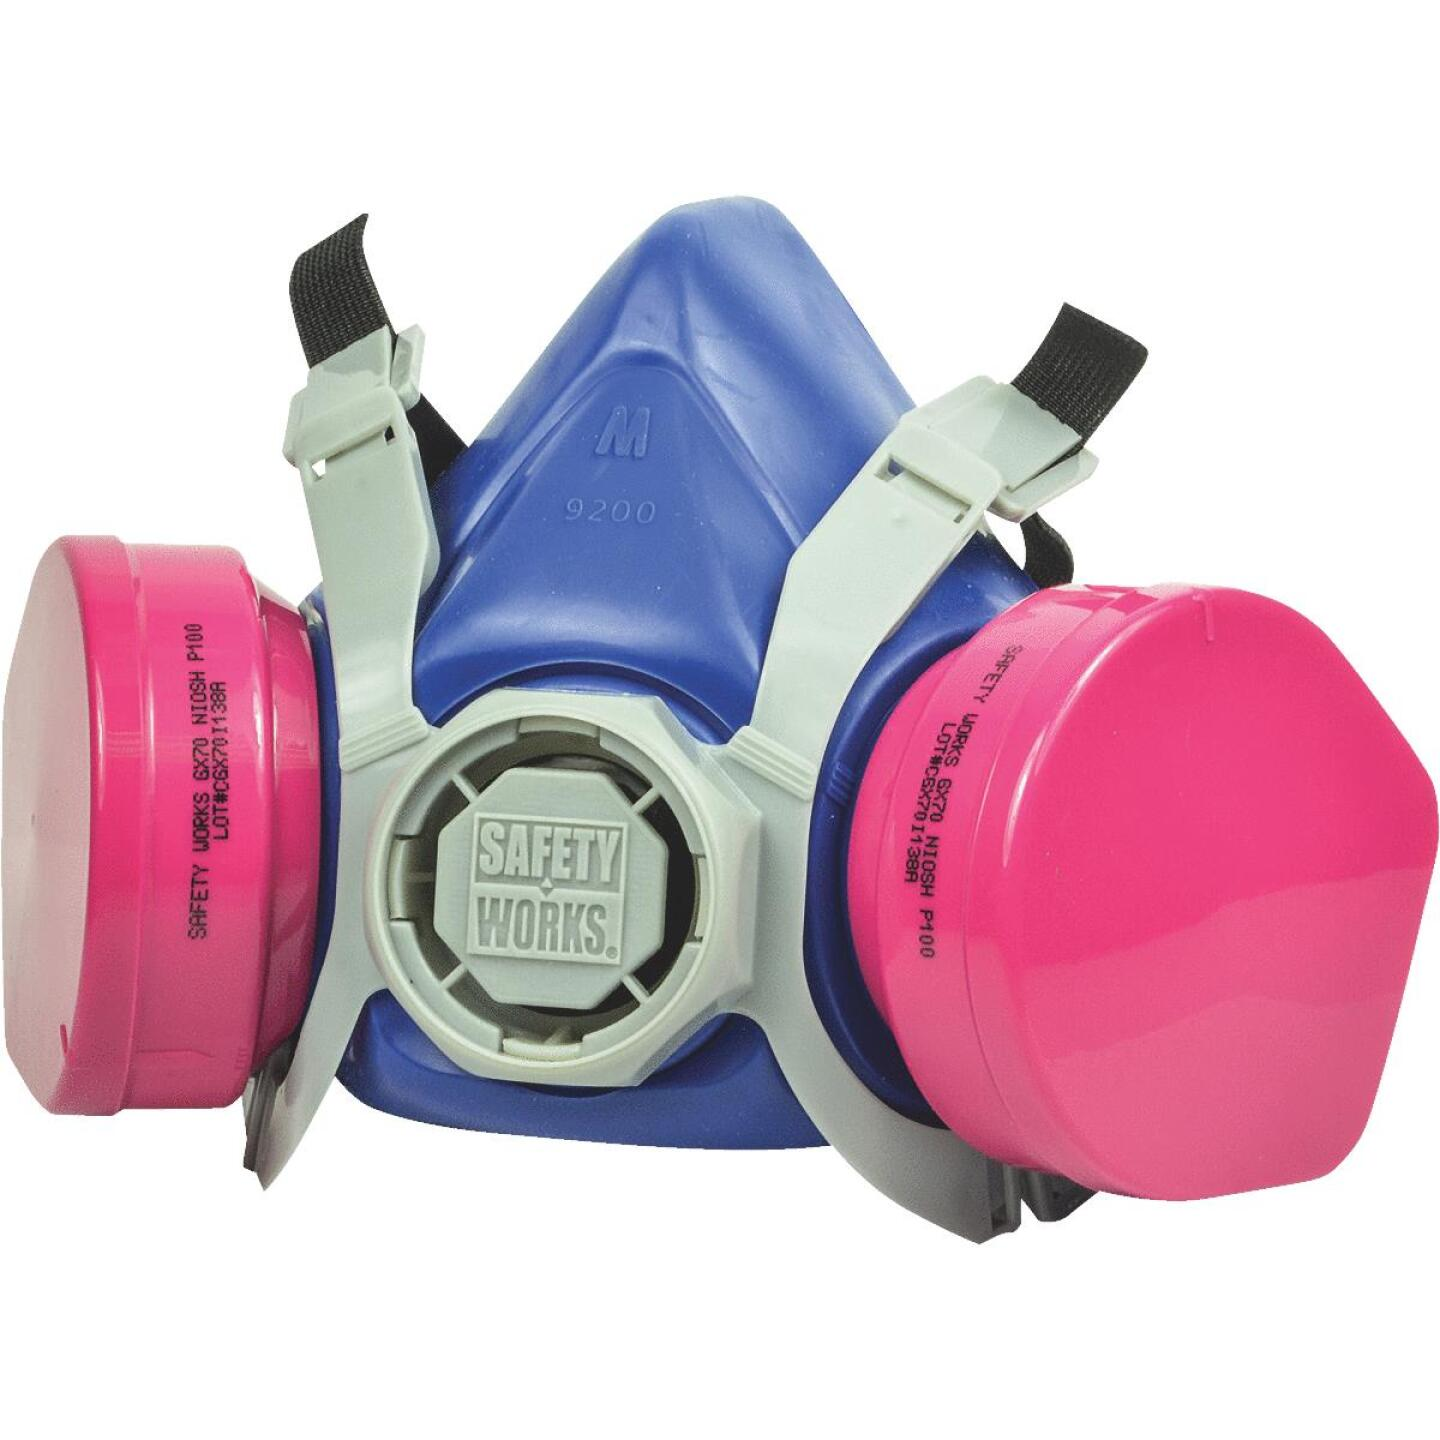 Safety Works P100 Toxic Dust Respirator Image 1